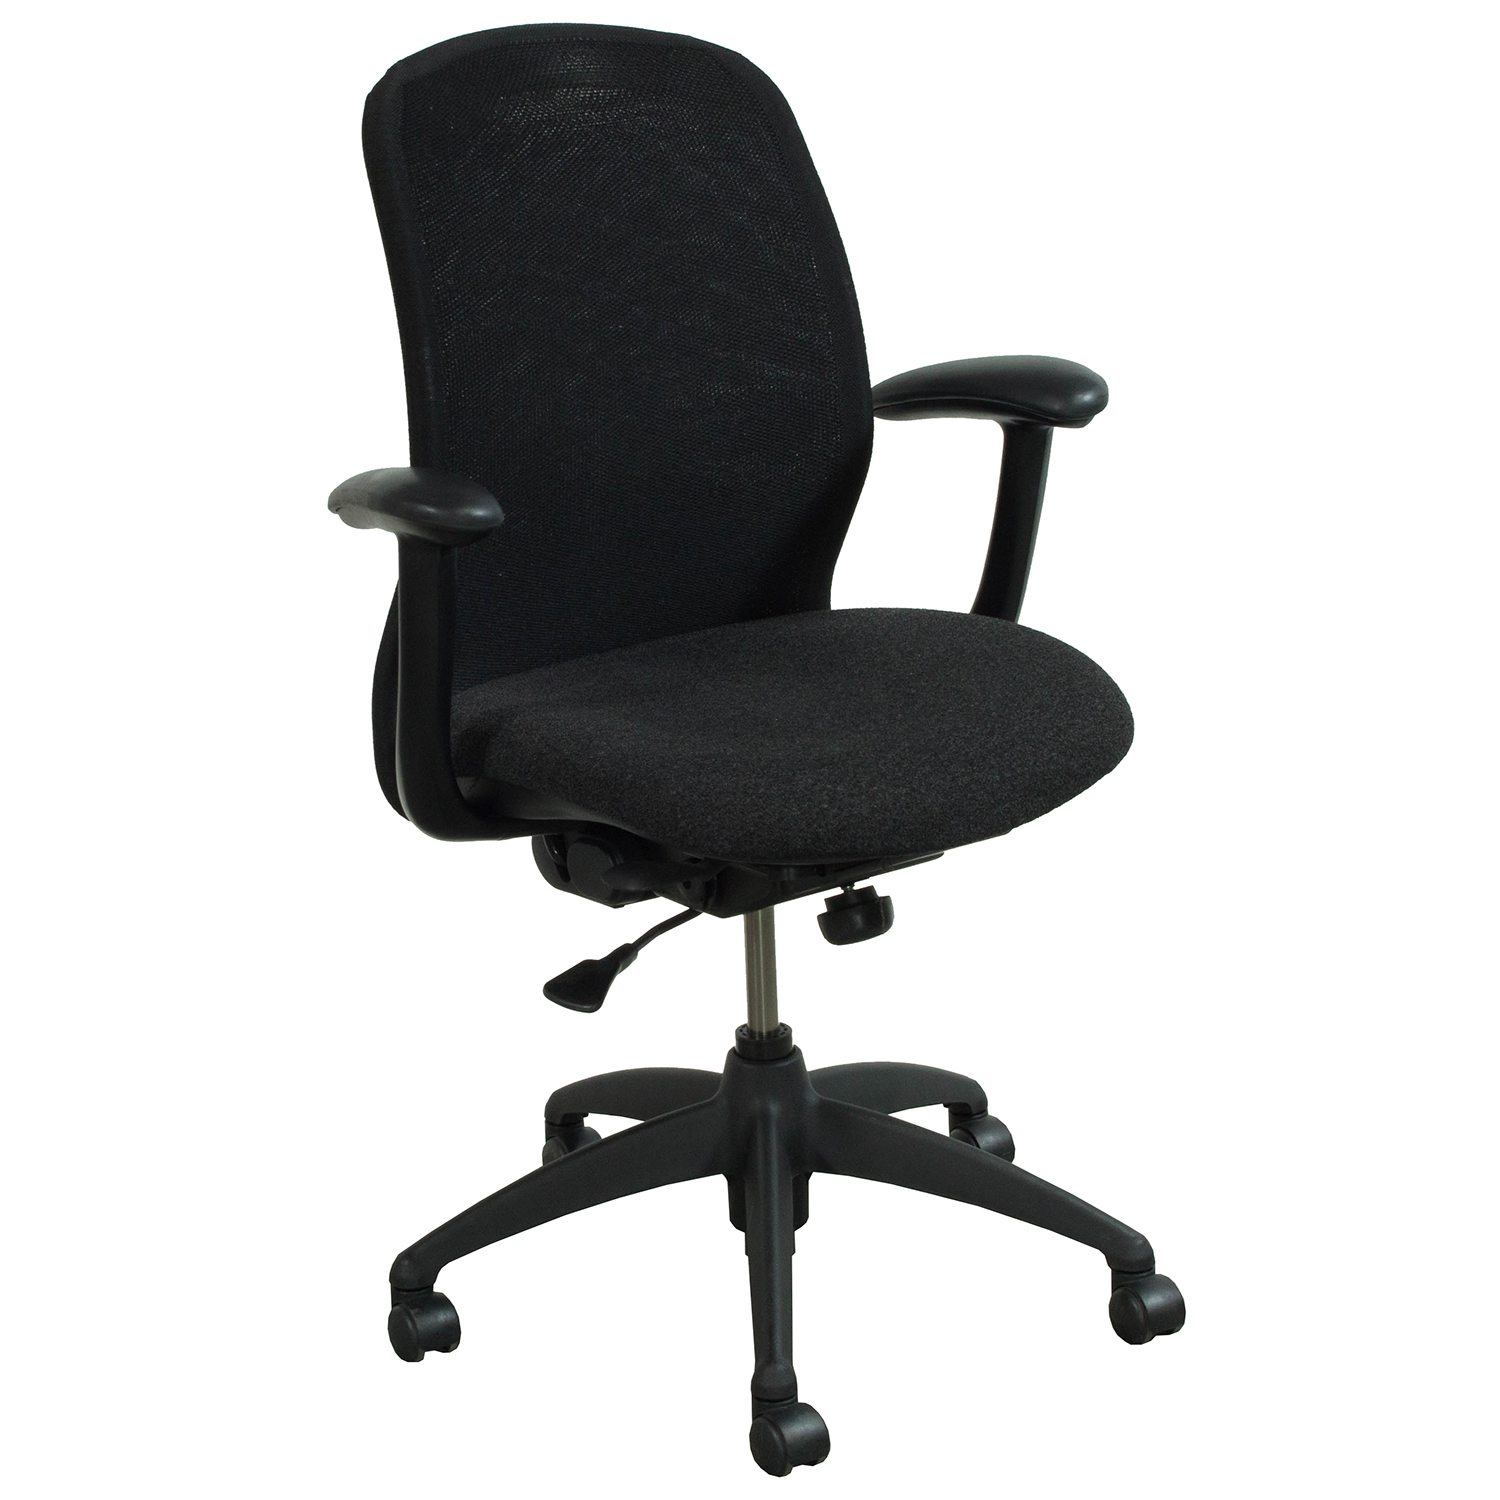 Haworth Improv He Series Used Conference Chair Black Mesh